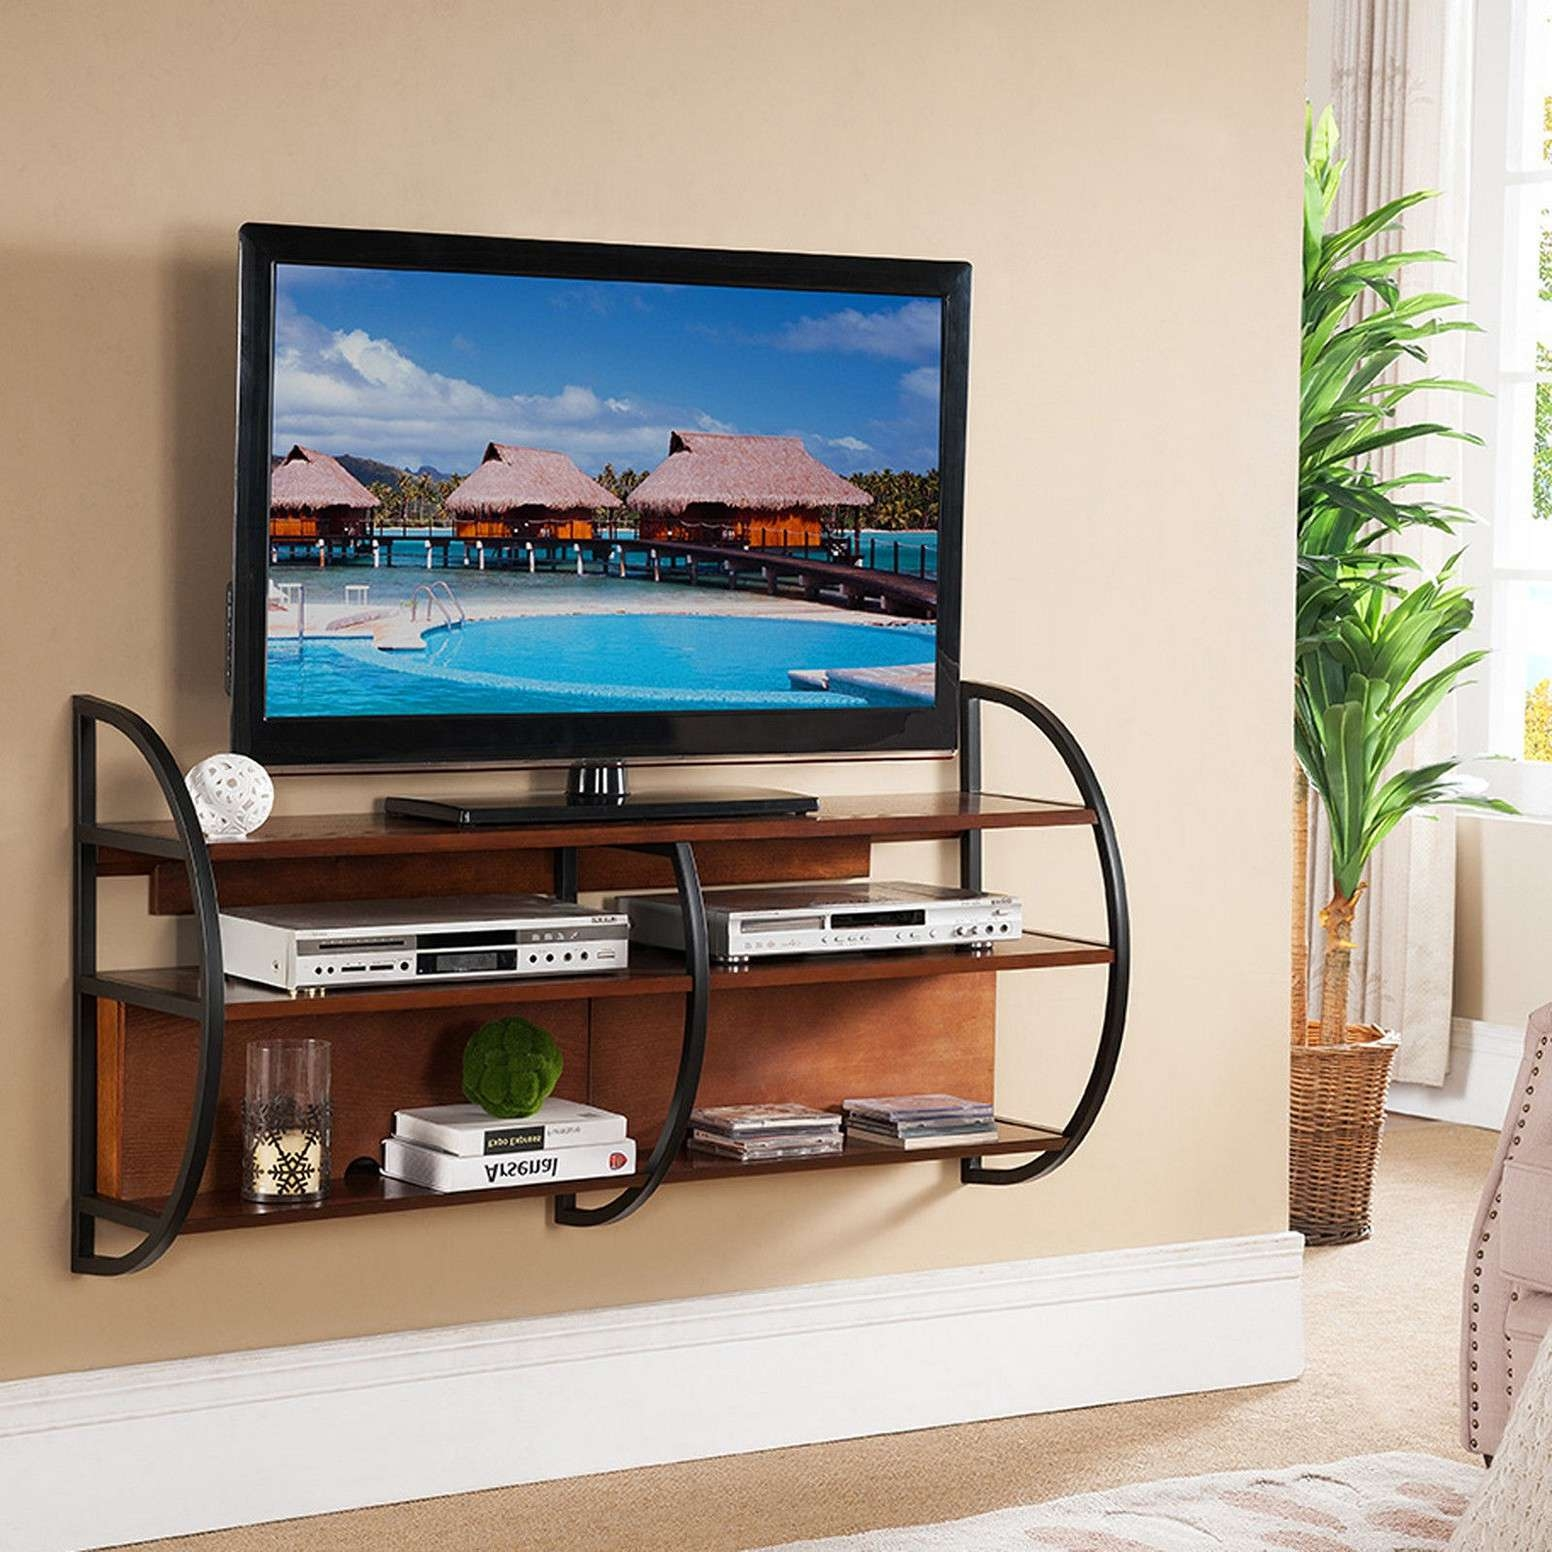 Genial Floating Tv Stand Tv Cabinets Along With Mounted Tv With In Floating Glass Tv Stands (View 6 of 15)